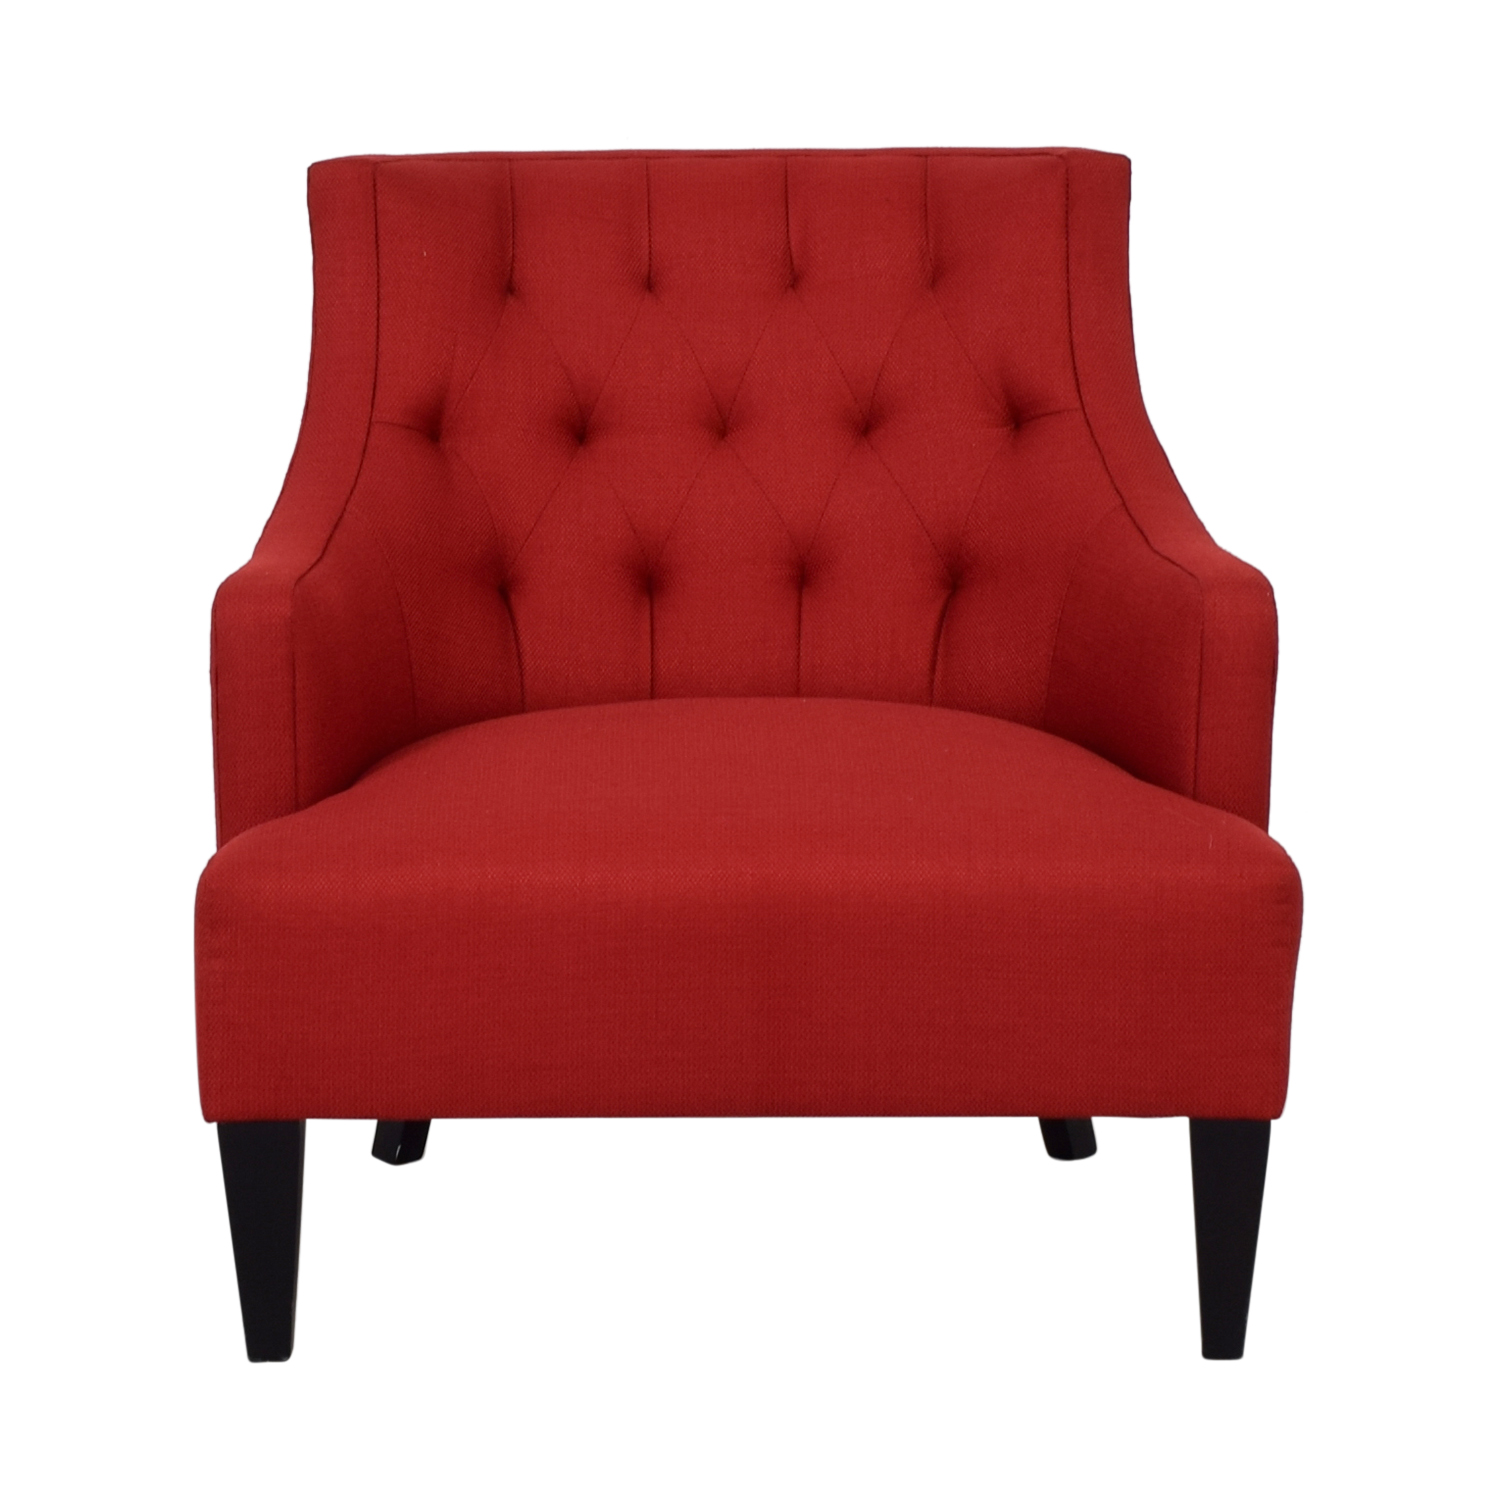 shop Crate & Barrel Red Fabric Accent Chair Crate & Barrel Chairs